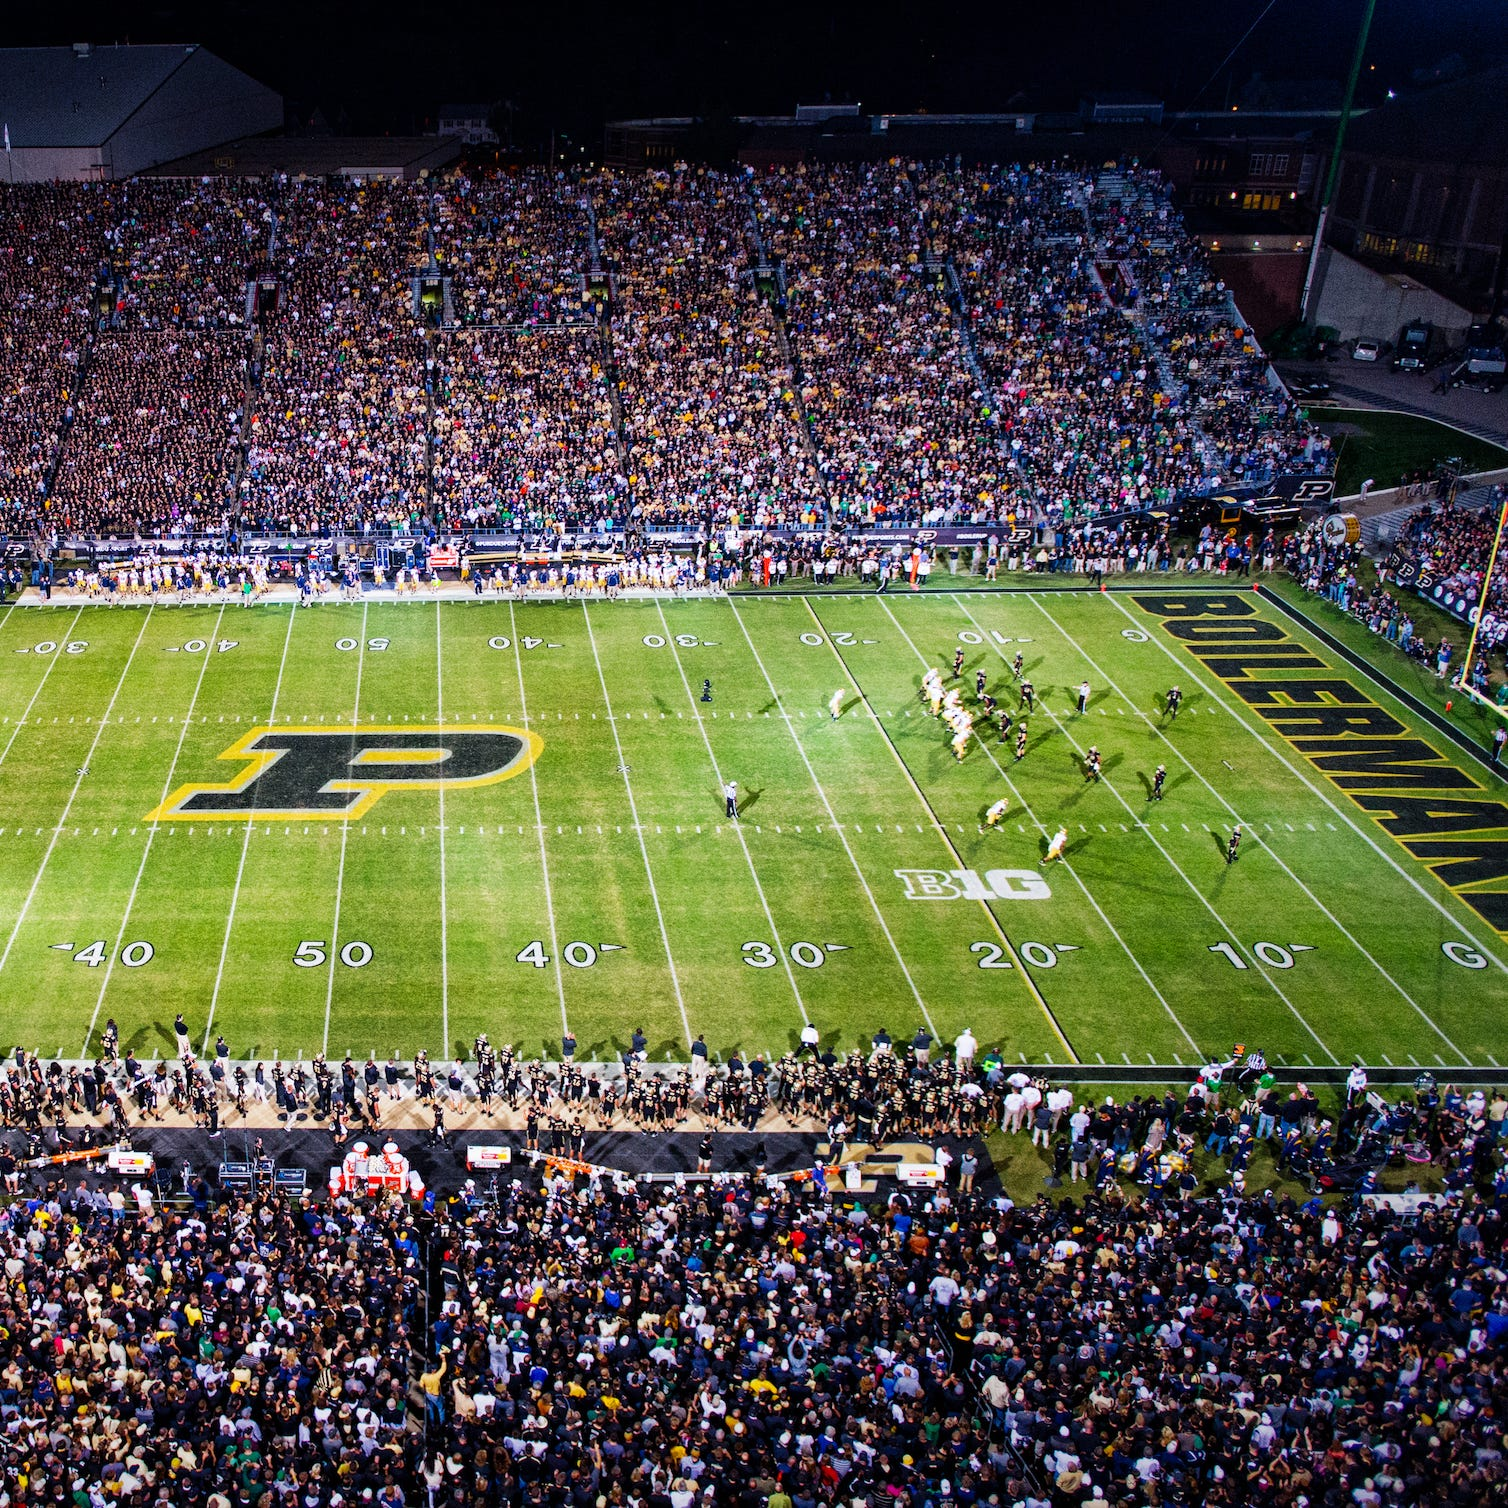 What's next for Ross-Ade Stadium and expectations for Purdue football